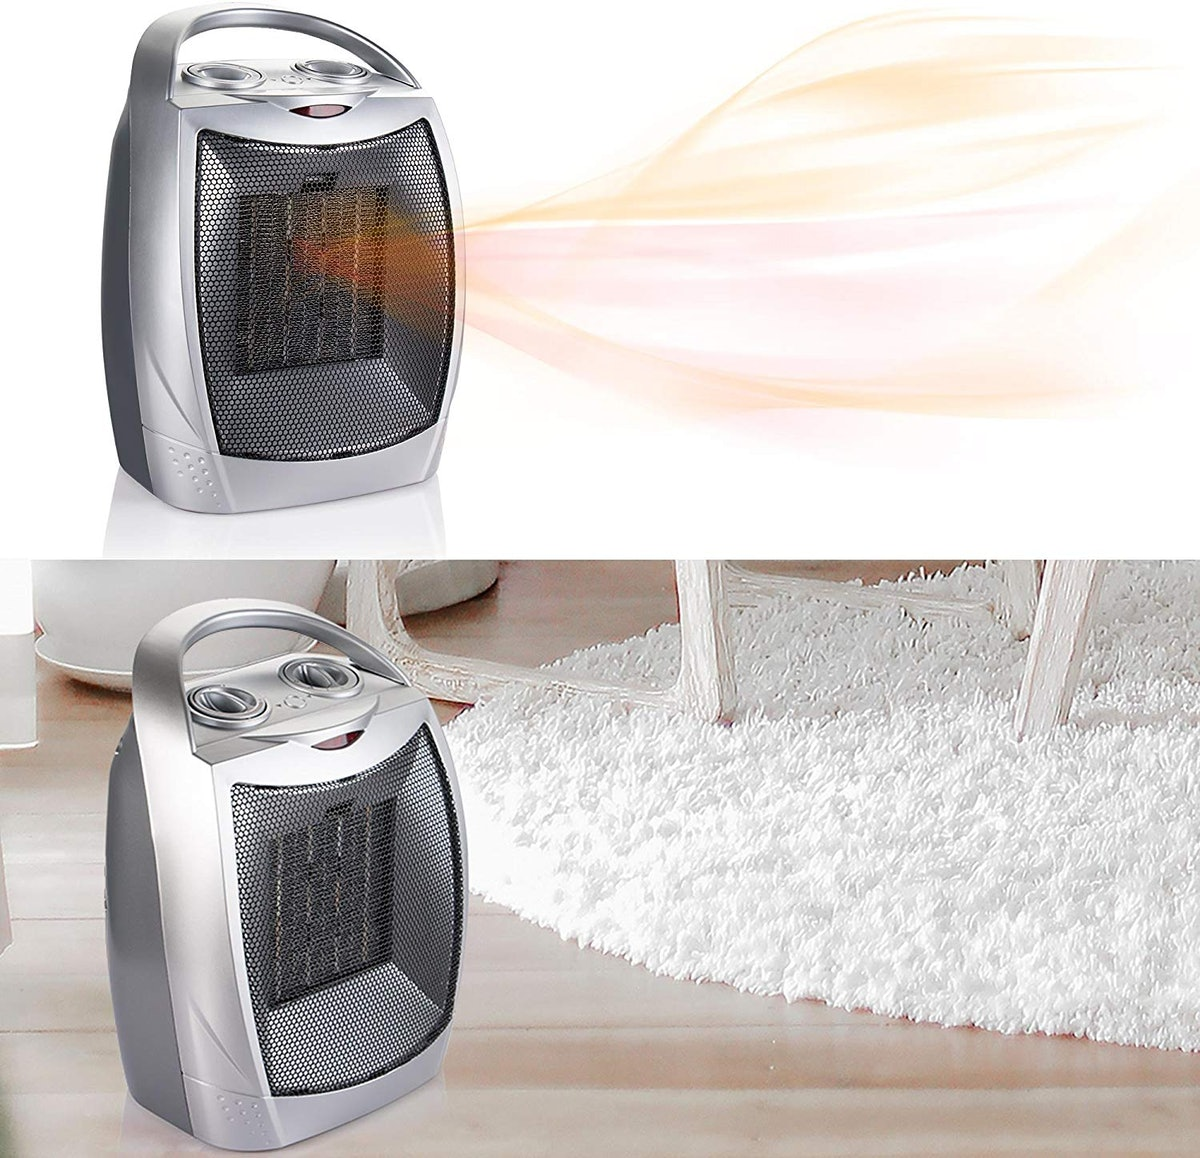 Givebest Ceramic Portable Heater